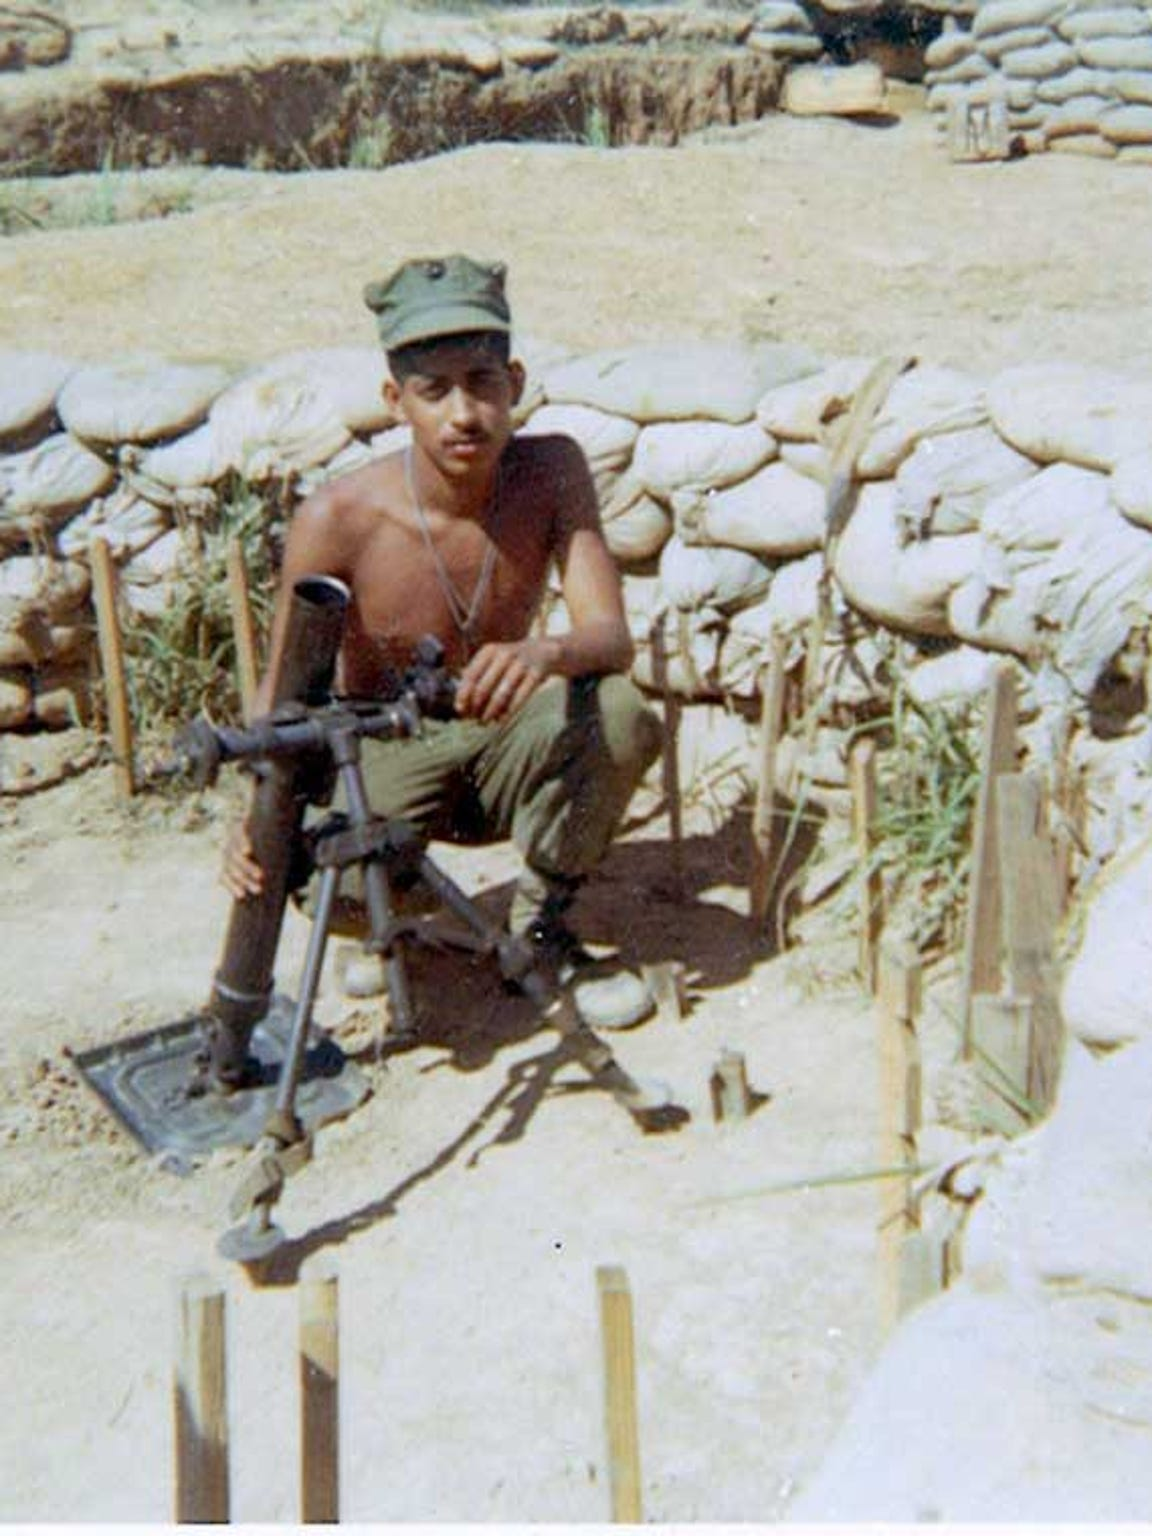 Ronald Reyes, a Marine, was killed in 1968 in Khe Sanh, Vietnam. His son Ronald R. Reyes, 49, of Moorpark, Calif., is participating in a meeting of adult children, who lost parents from opposing sides in the Vietnam War.